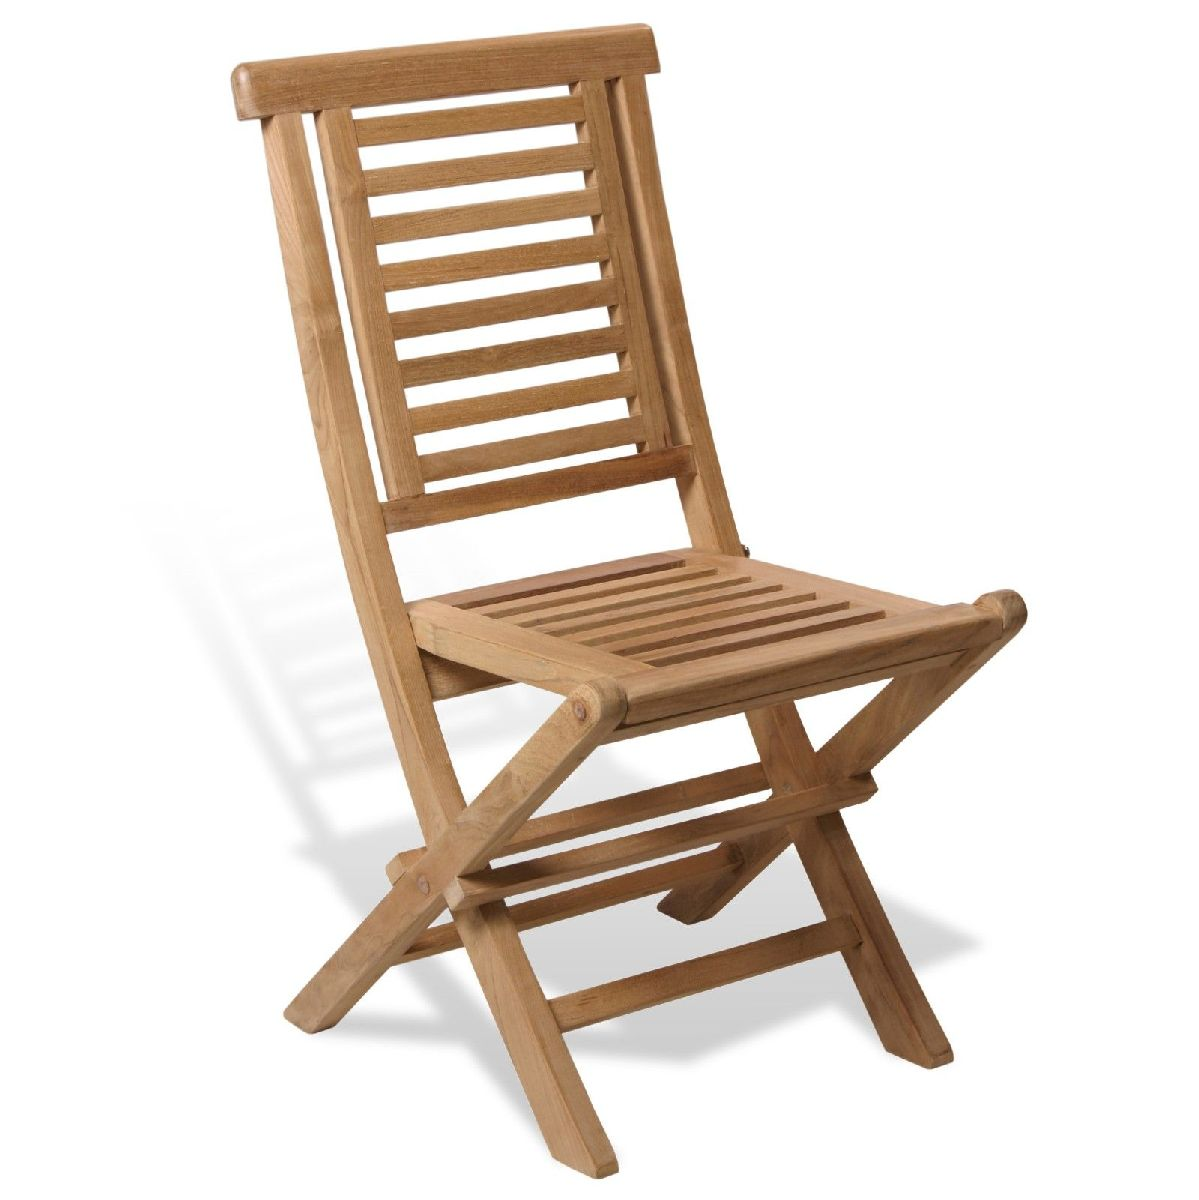 Chair | Indonesian Teak Furniture at Its Best